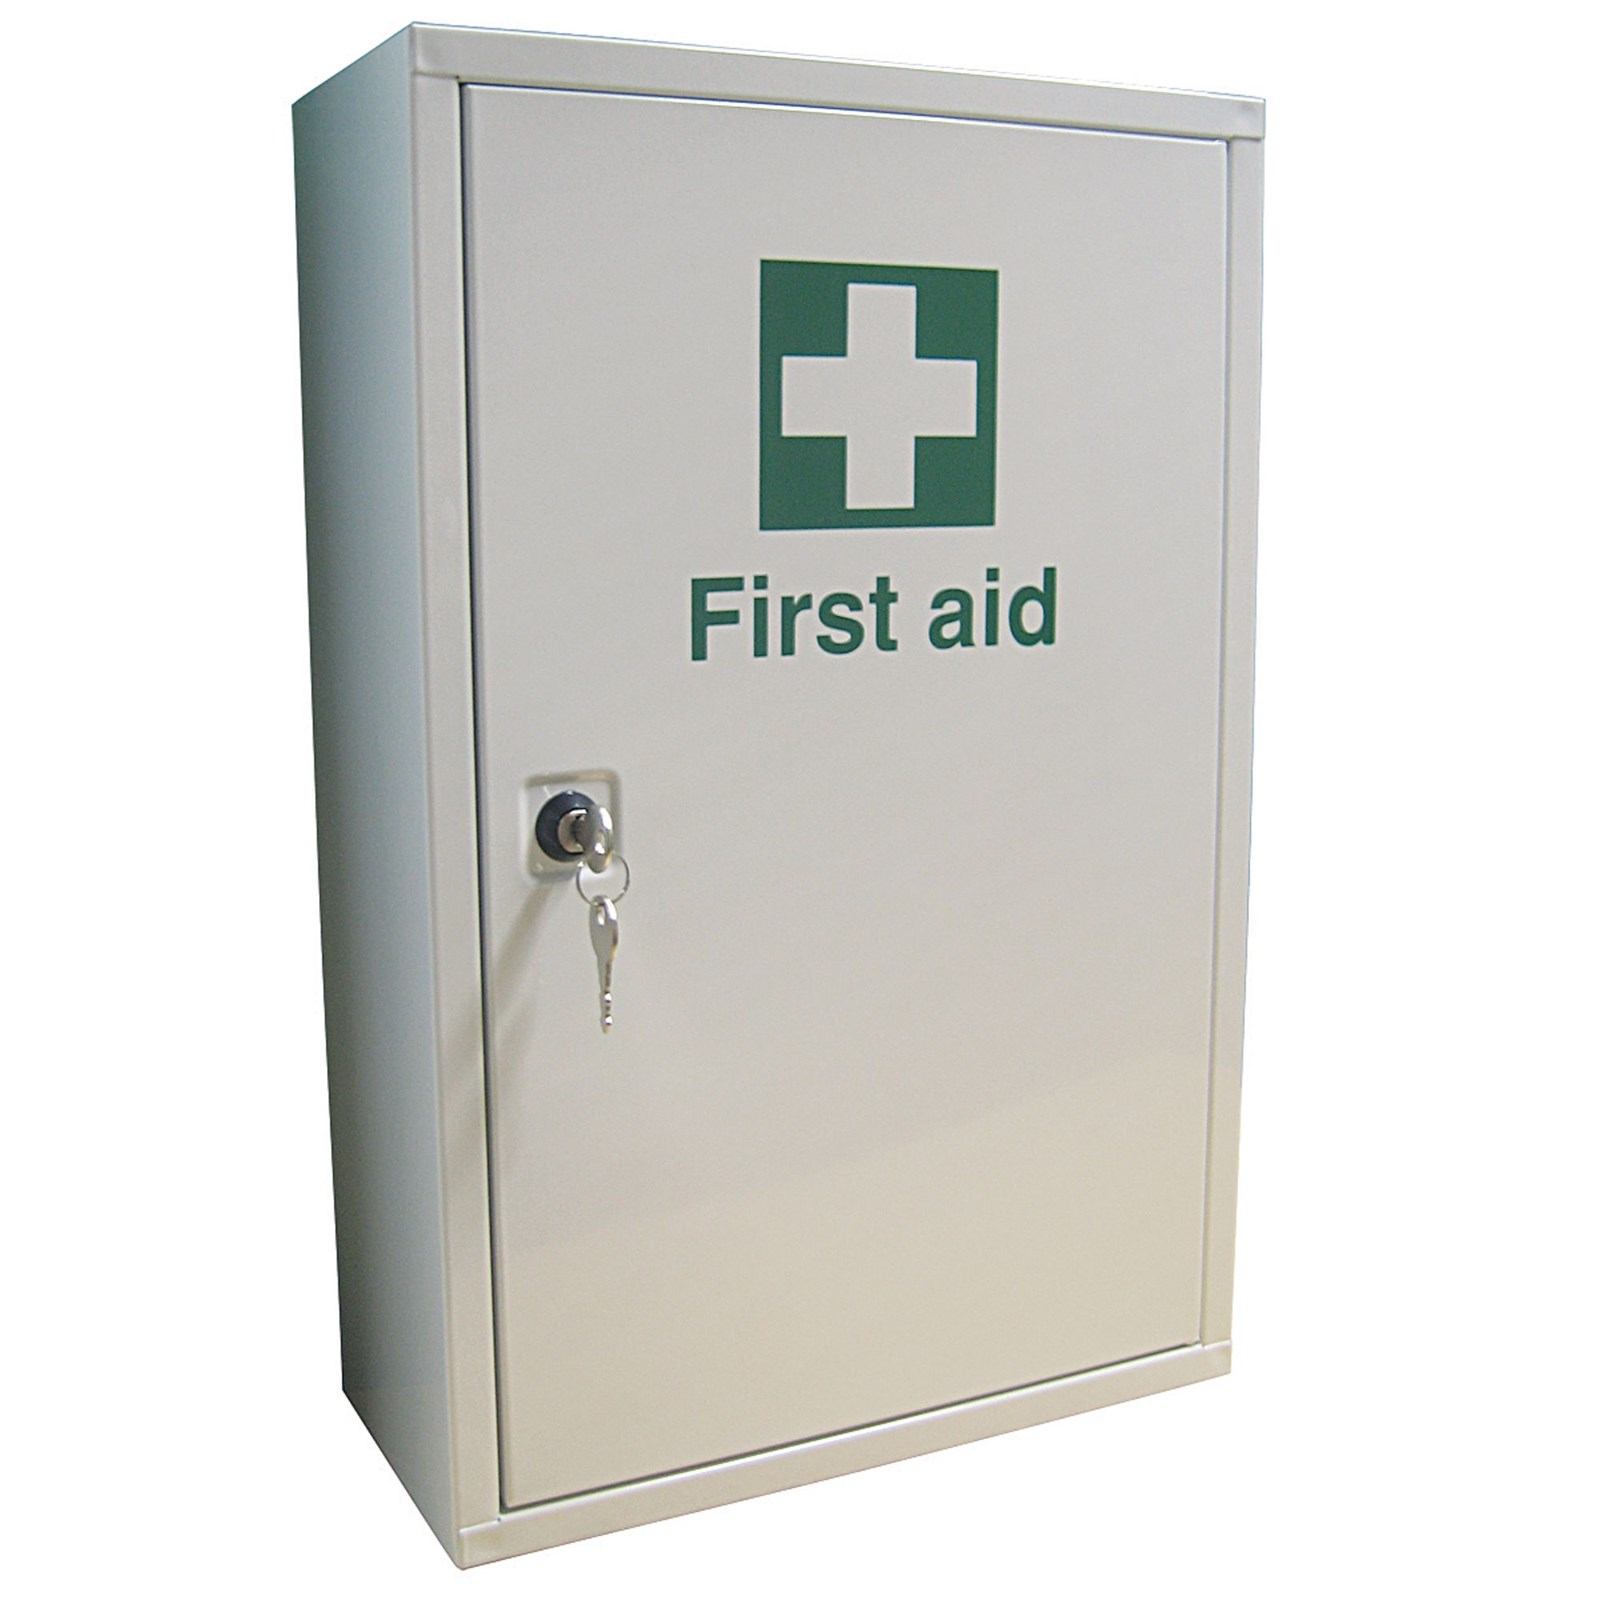 first aid cabinet gls educational supplies. Black Bedroom Furniture Sets. Home Design Ideas